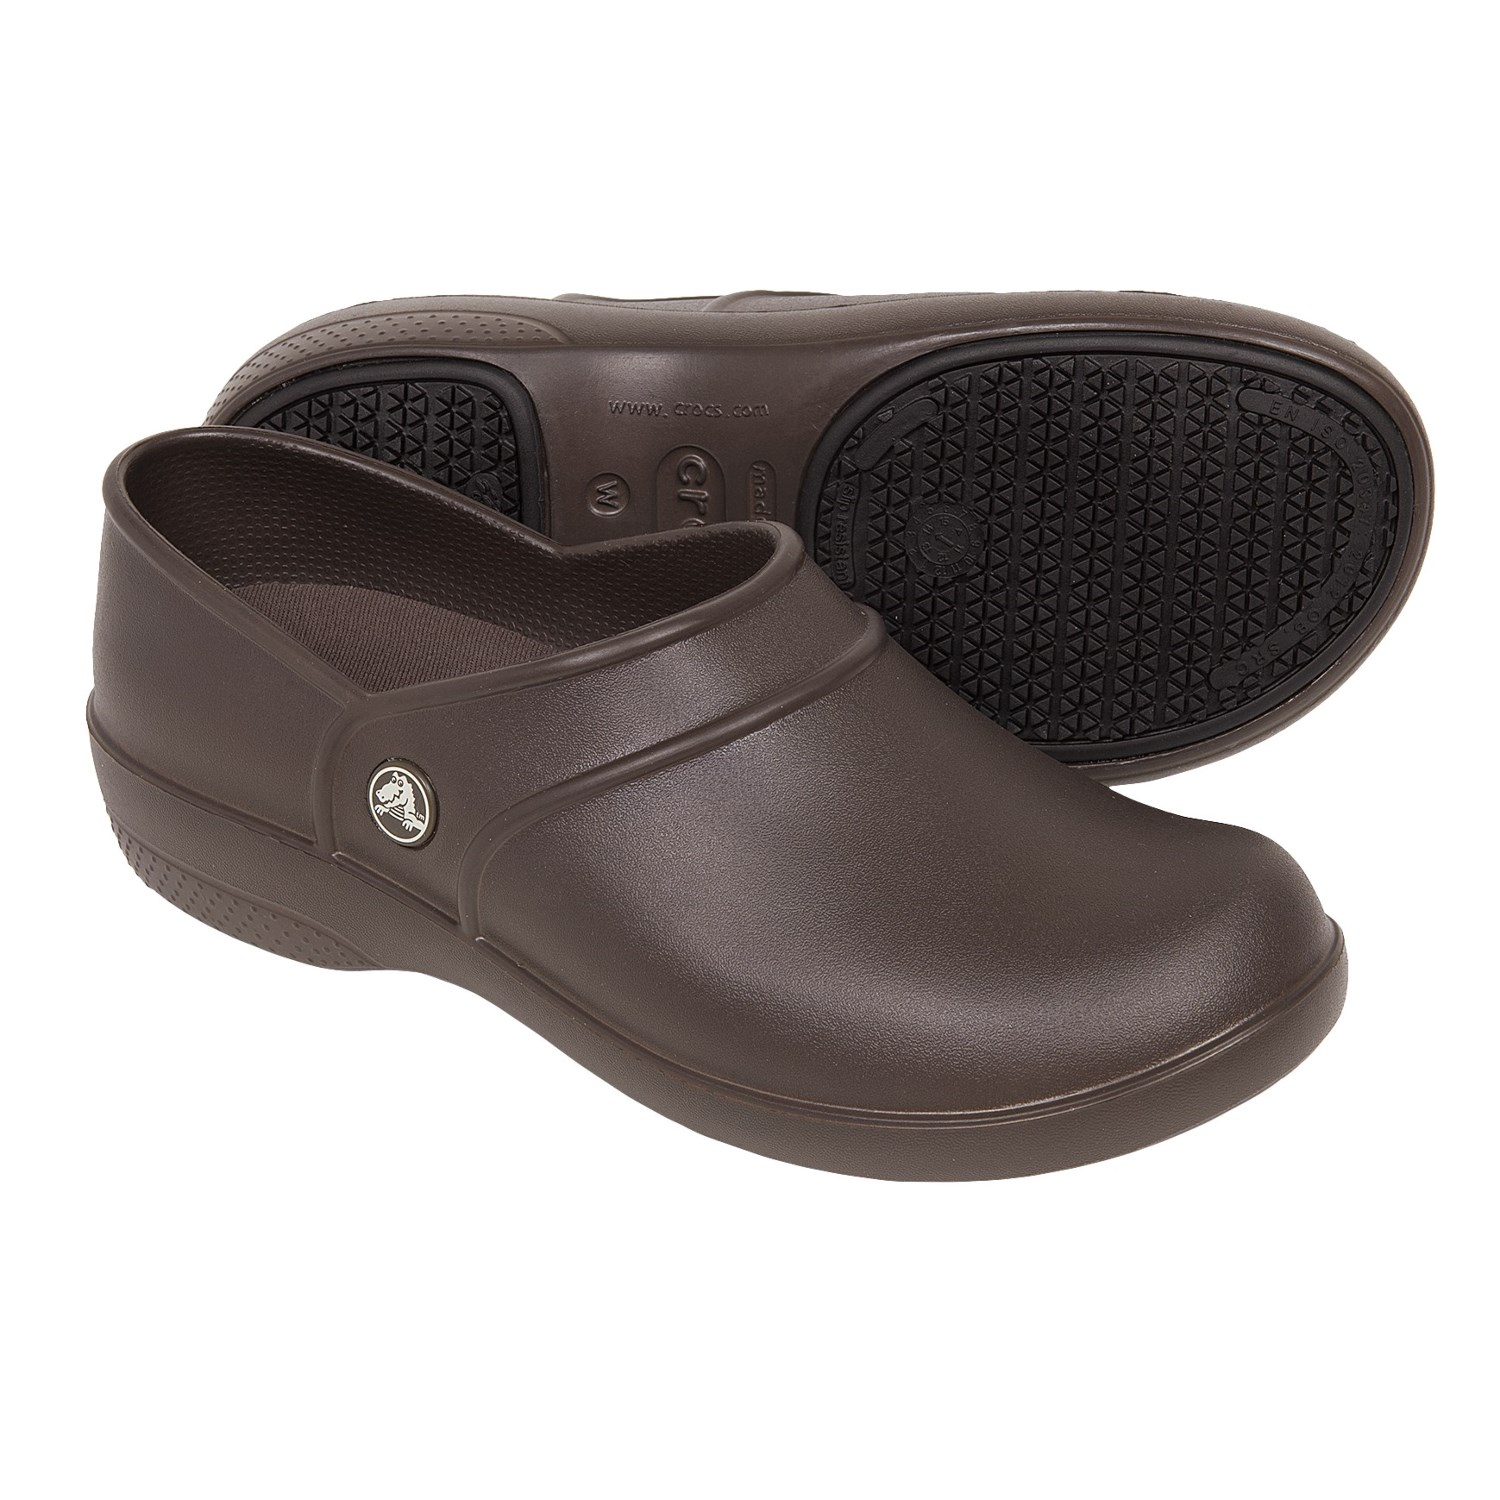 Crocs Neria Work Shoes Reviews